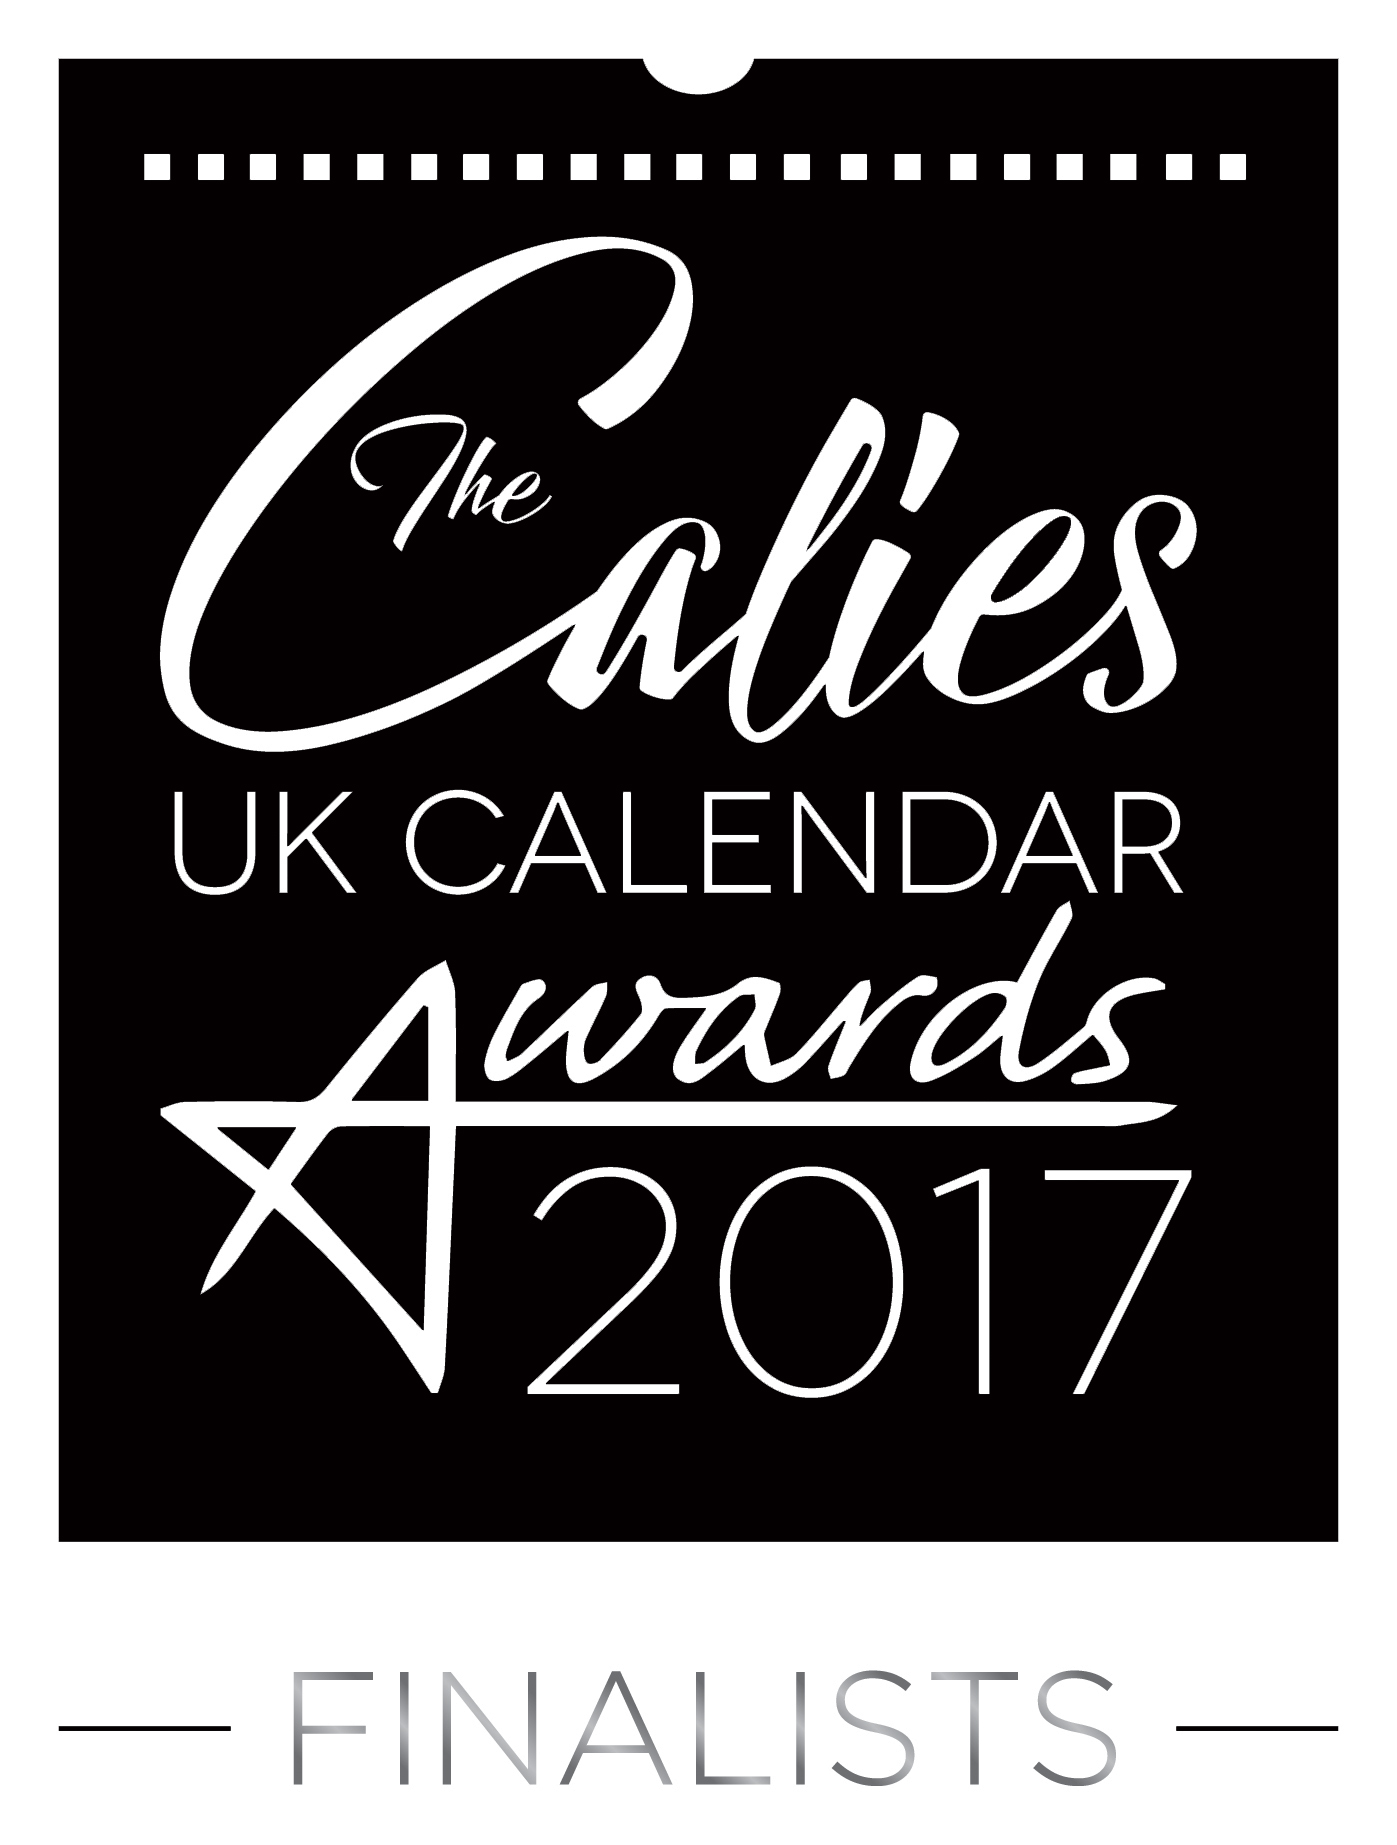 The finalists announced for The UK Calendar Awards 2017 ...